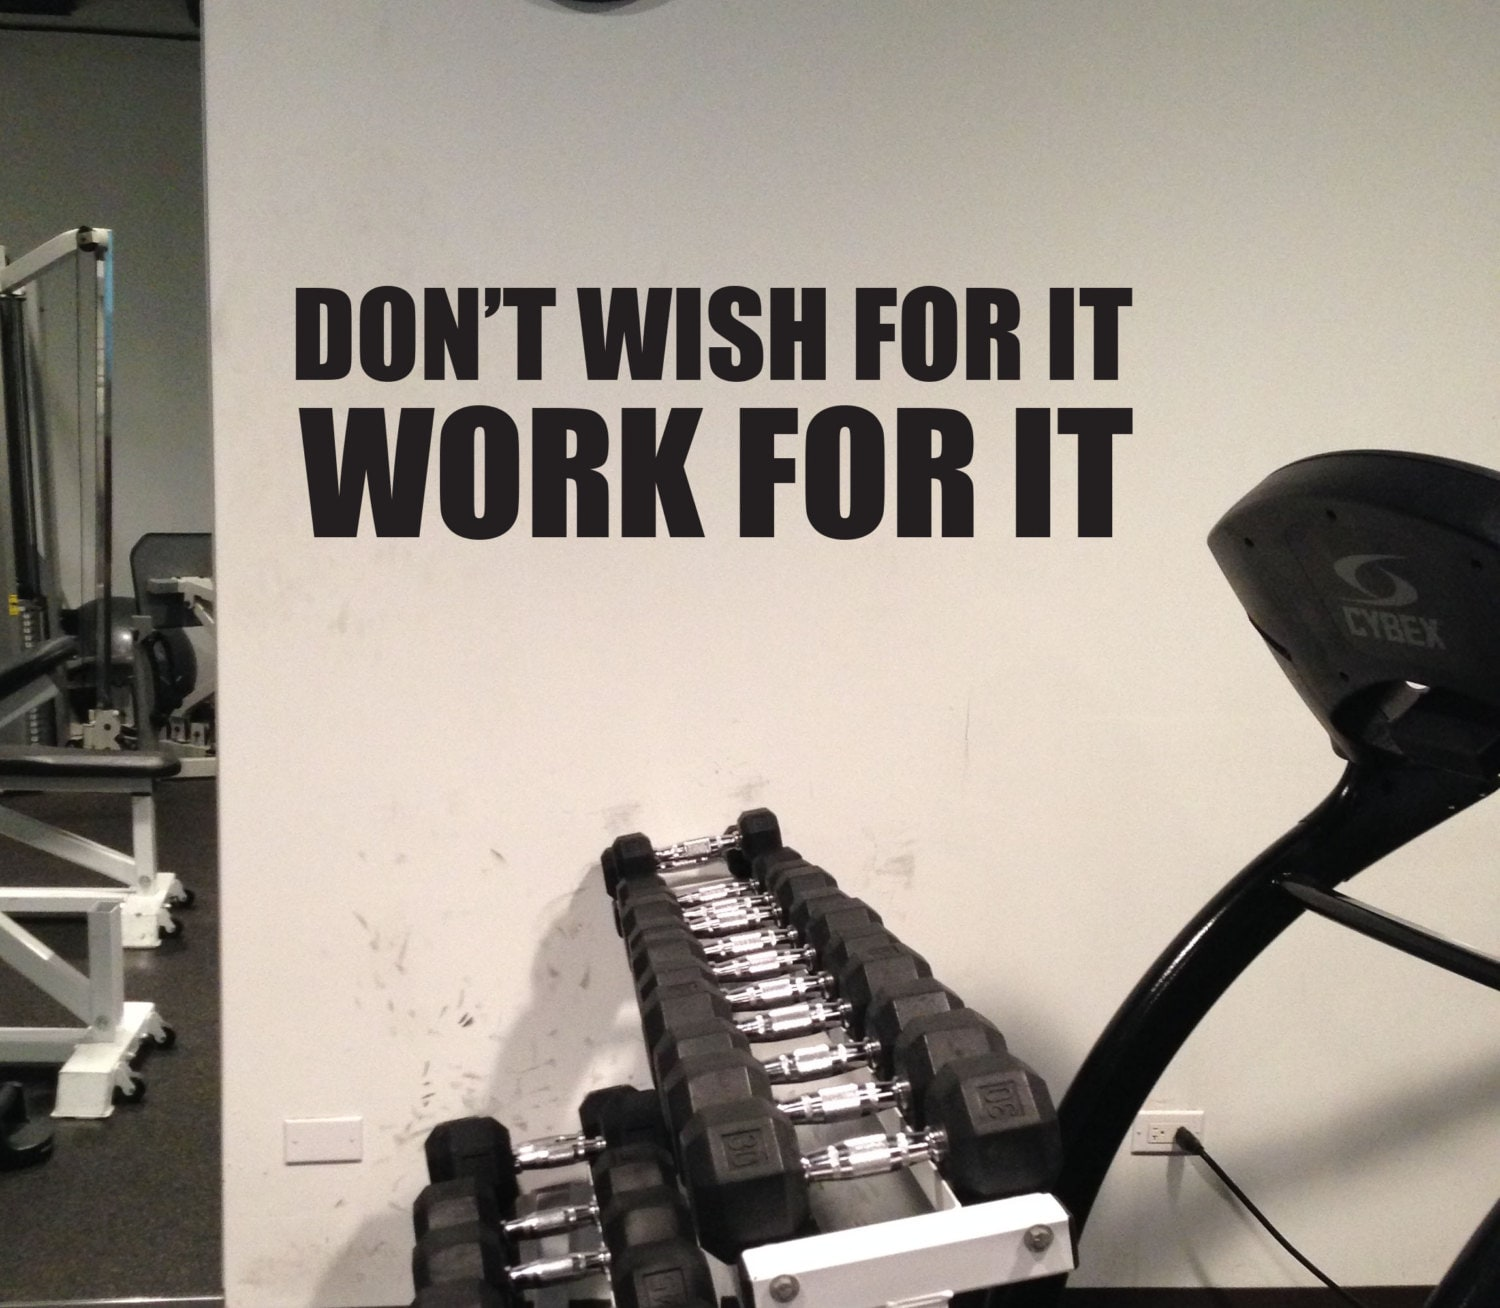 Gym Wall Design: Physical Therapist Office Decor, Sports Quote Decor, Home